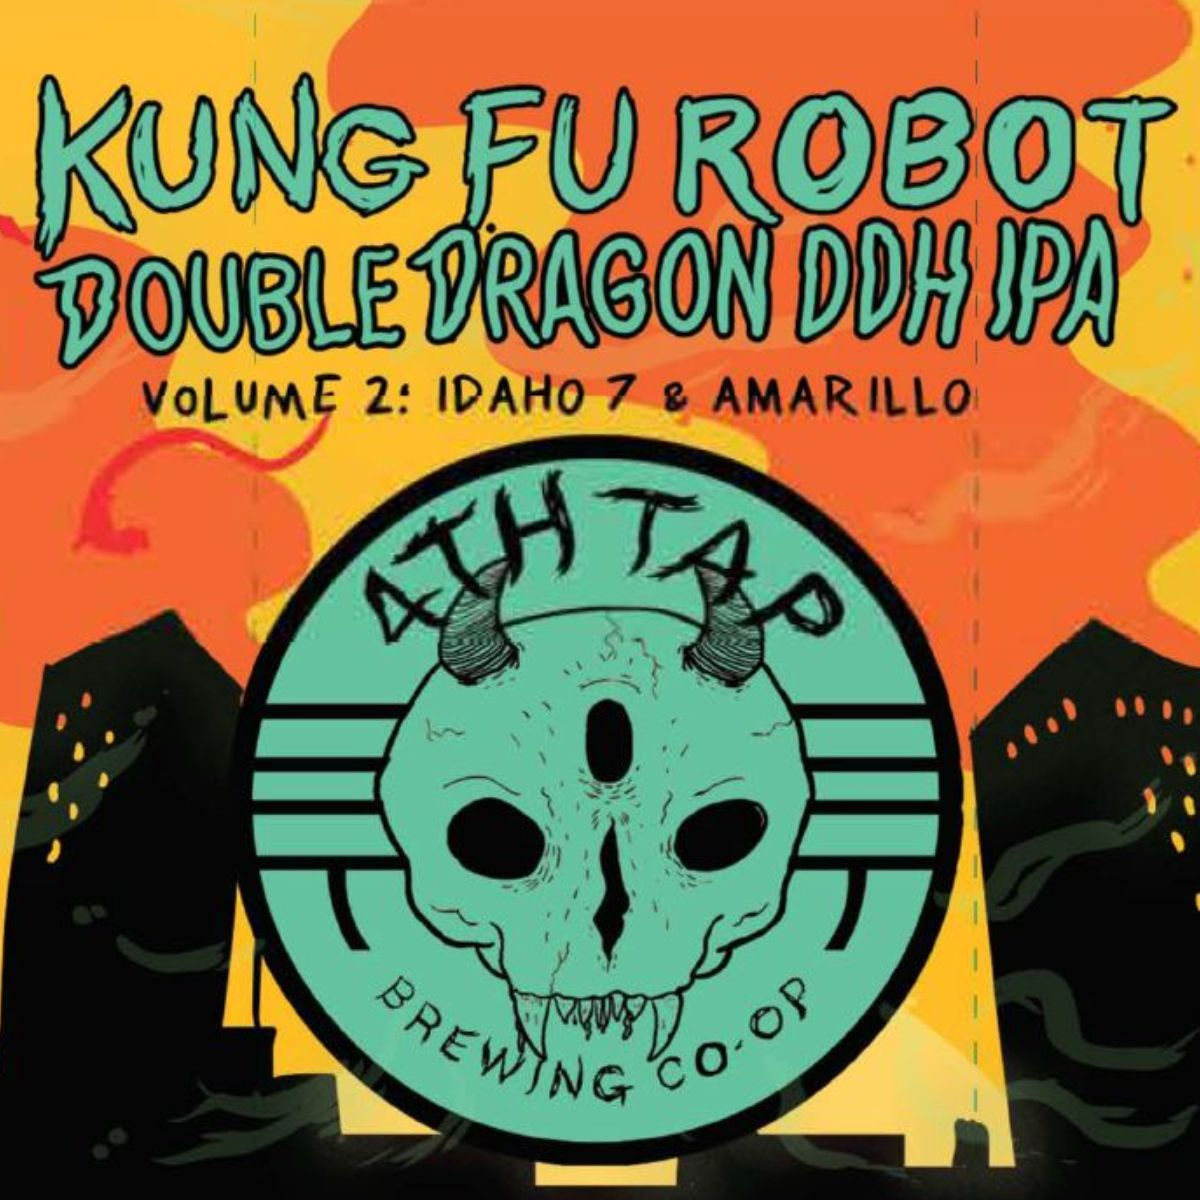 KFR DDDDHV2:Idaho7 - Our next Kung Fu Robot Double Dragon Double Dry-Hopped release will be a hazy monster heavily hopped with Idaho 7 and Amarillo. We have always wanted to work with the Idaho 7 hop strain (Amarillo hops are badass as well, don't worry) and we think this is going to be exceptionally delicious. Look for this one near the end of the month.